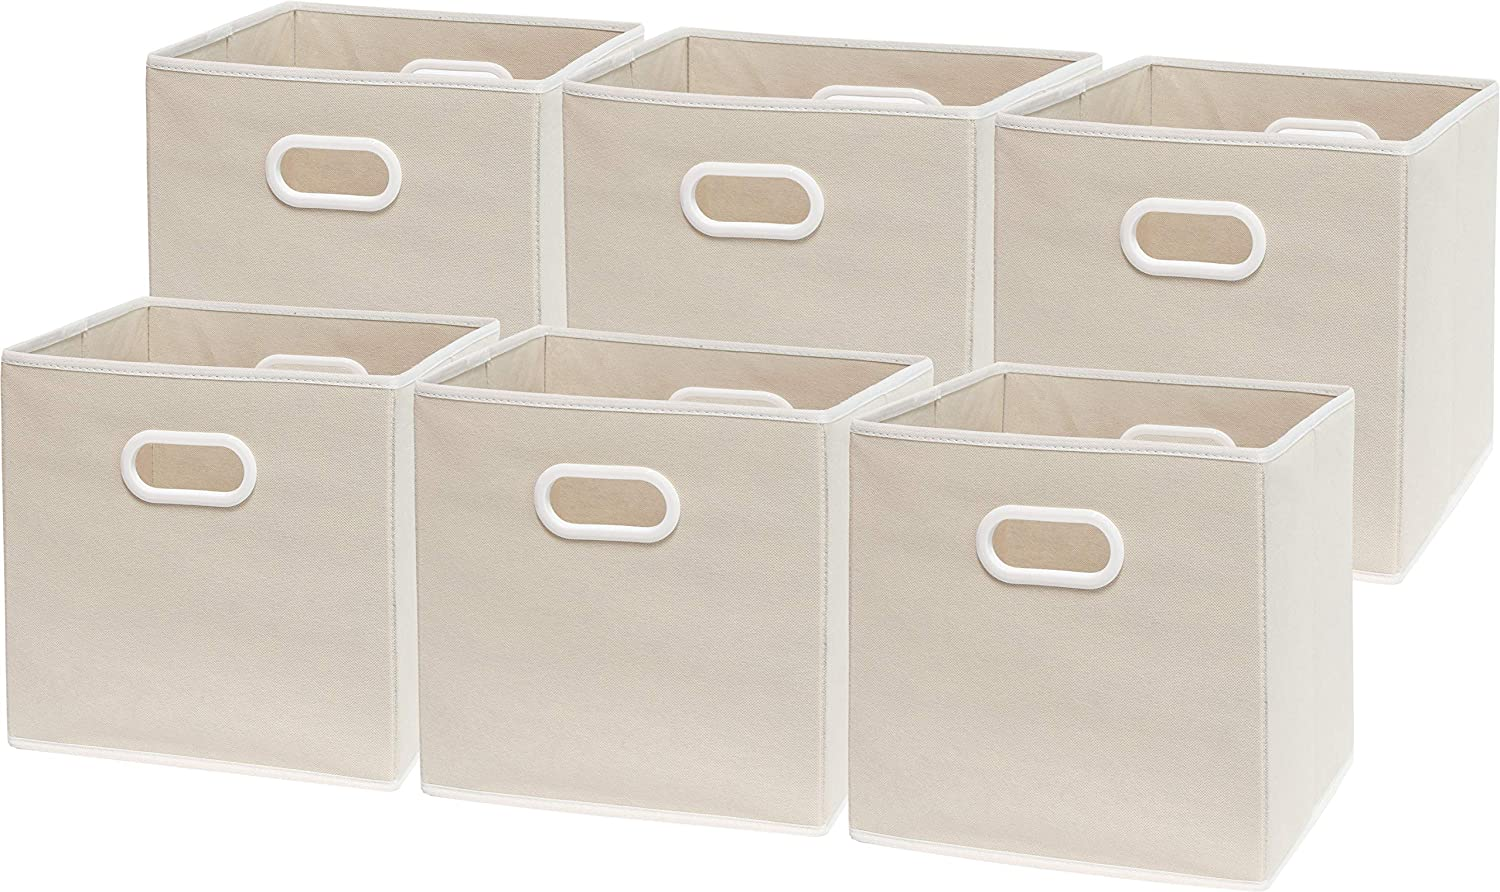 6 Pack - SimpleHouseware Foldable Cube Storage Bin with Handle, Beige (12-Inch Cube)